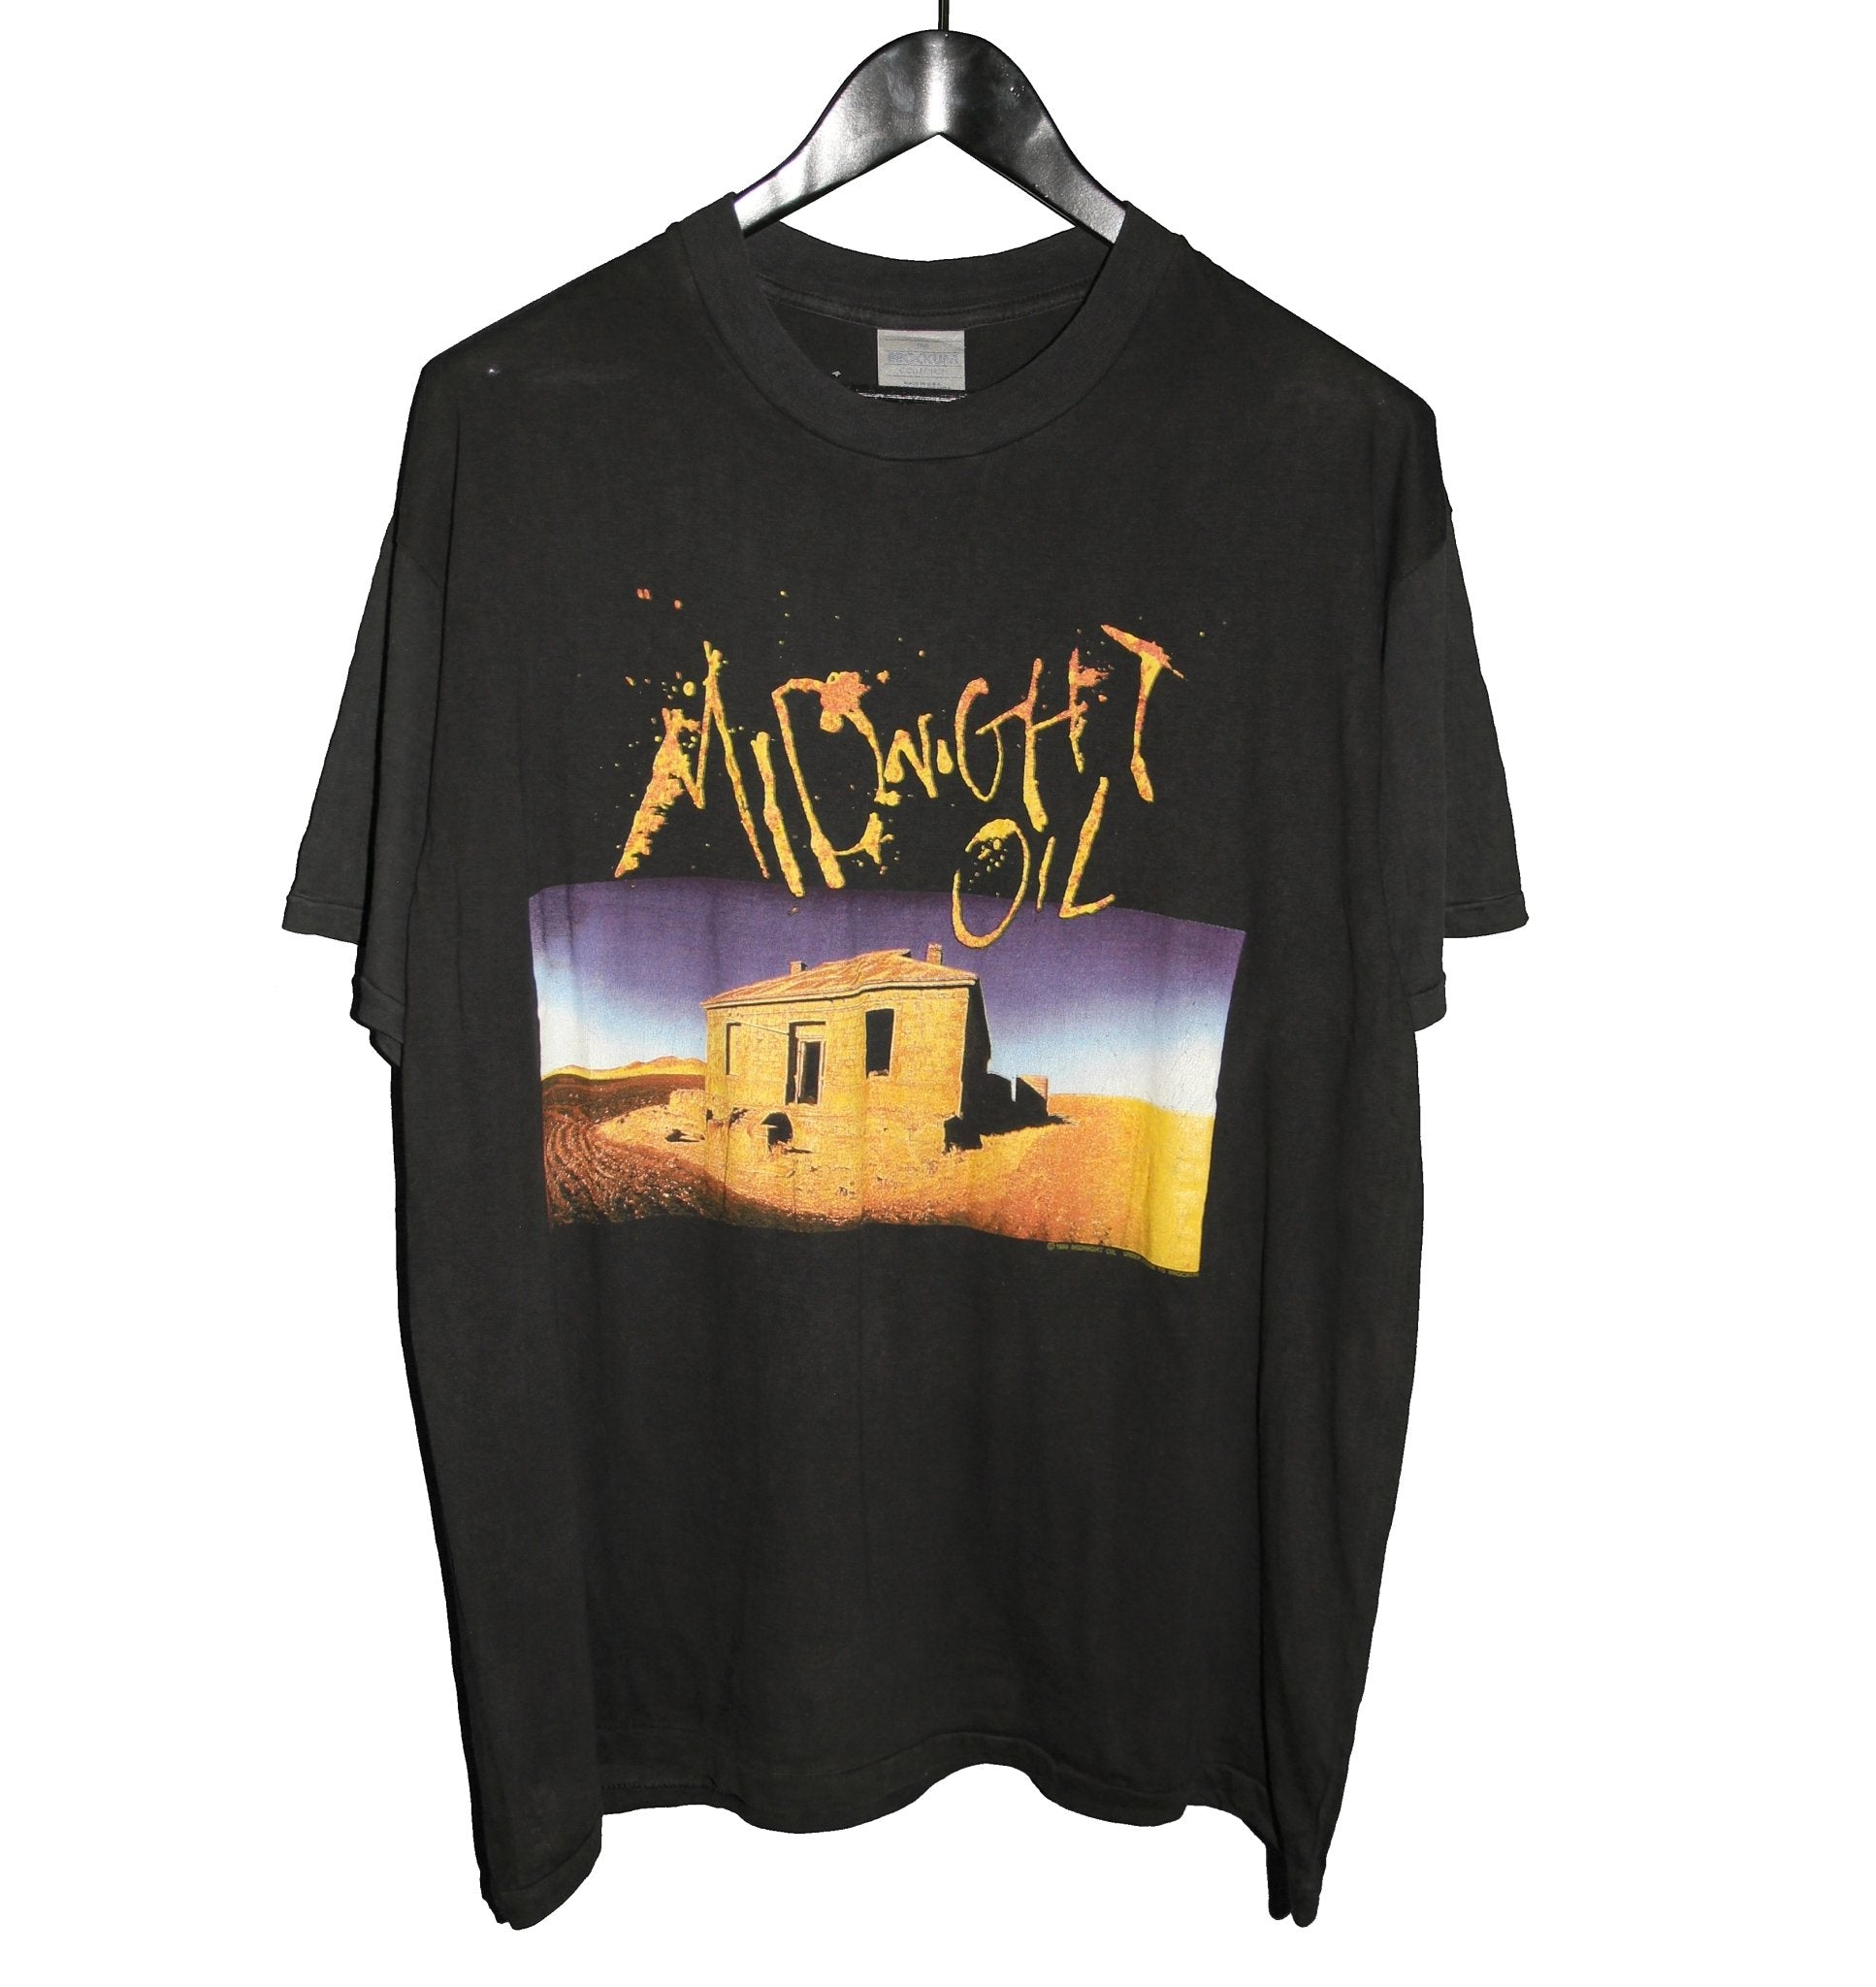 Midnight Oil 1989 Diesel and Dust Shirt - Faded AU